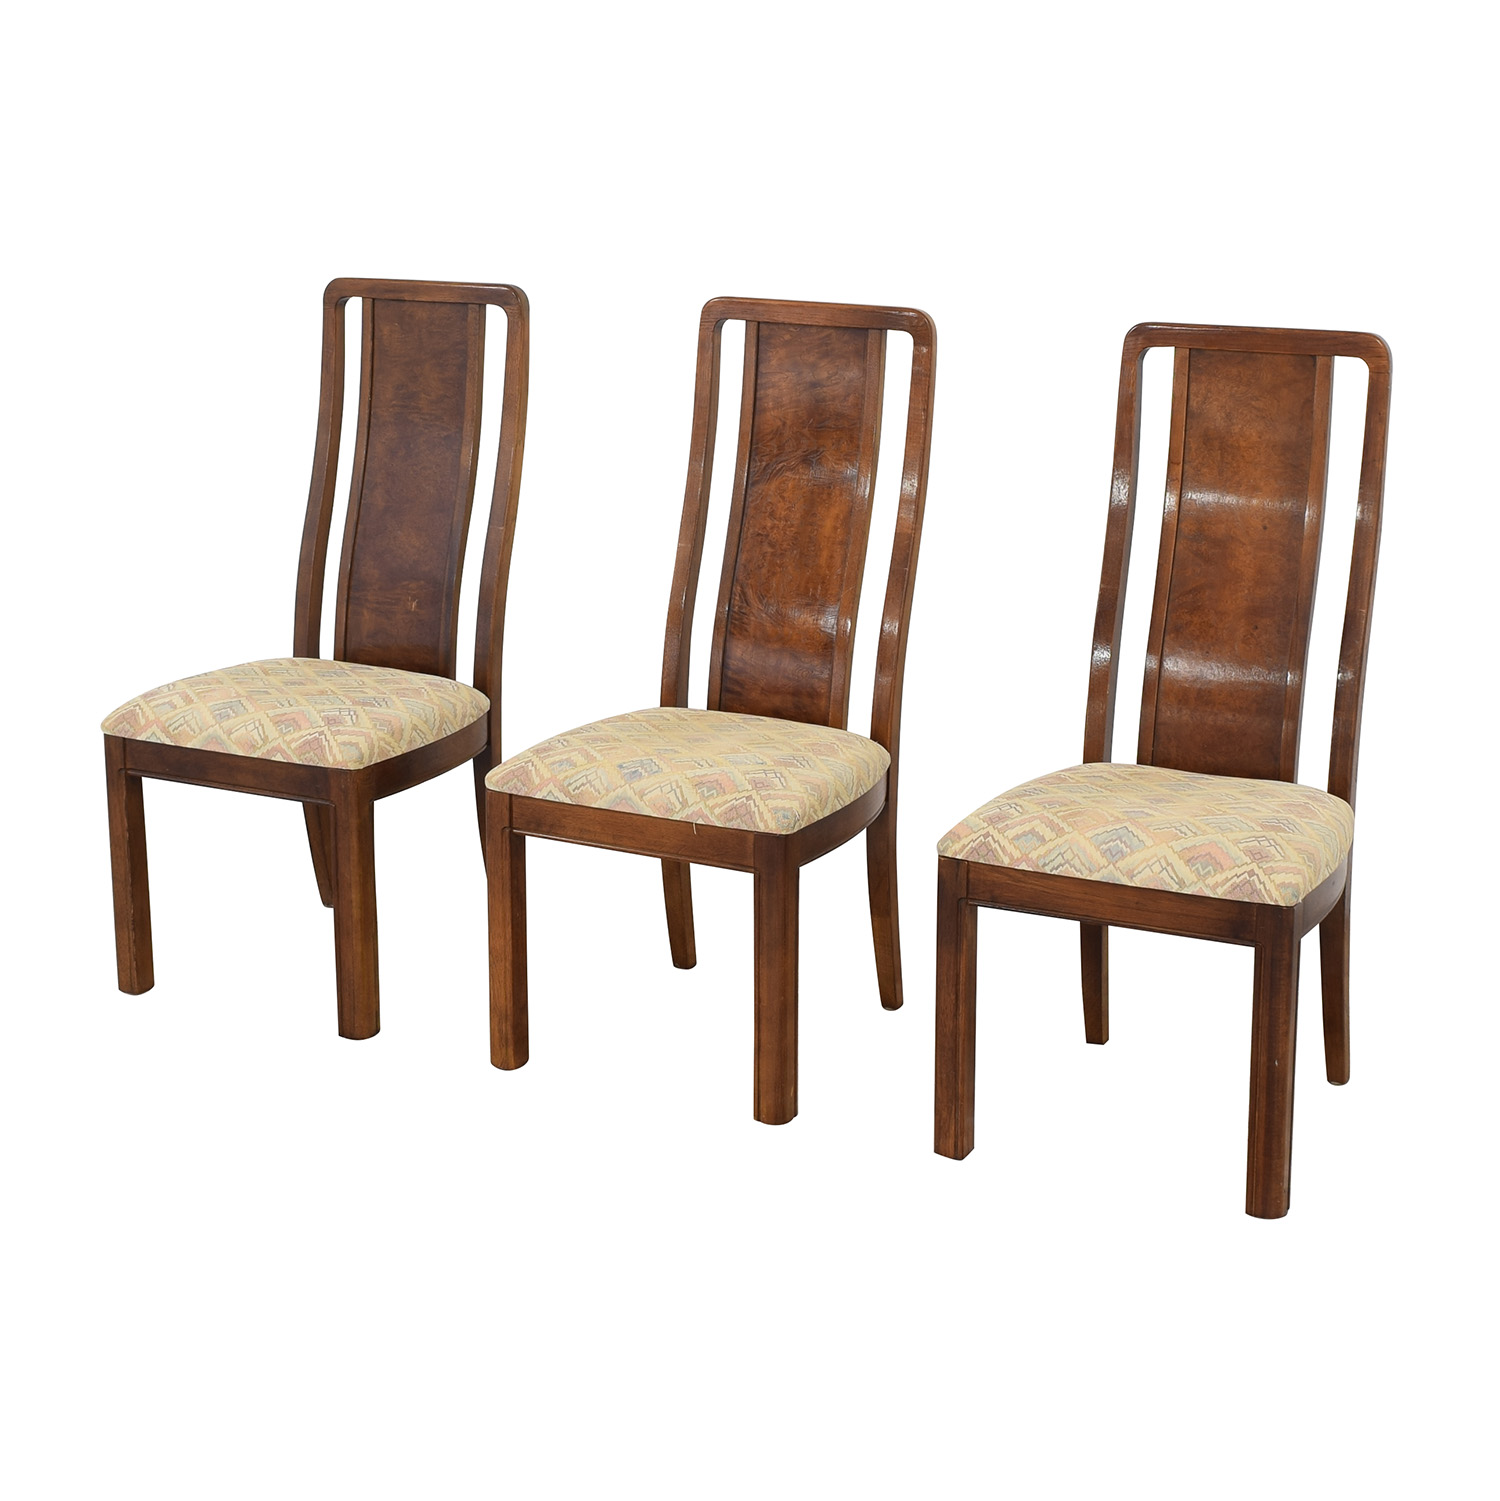 buy Thomasville Thomasville Vintage Burled Dining Chairs online